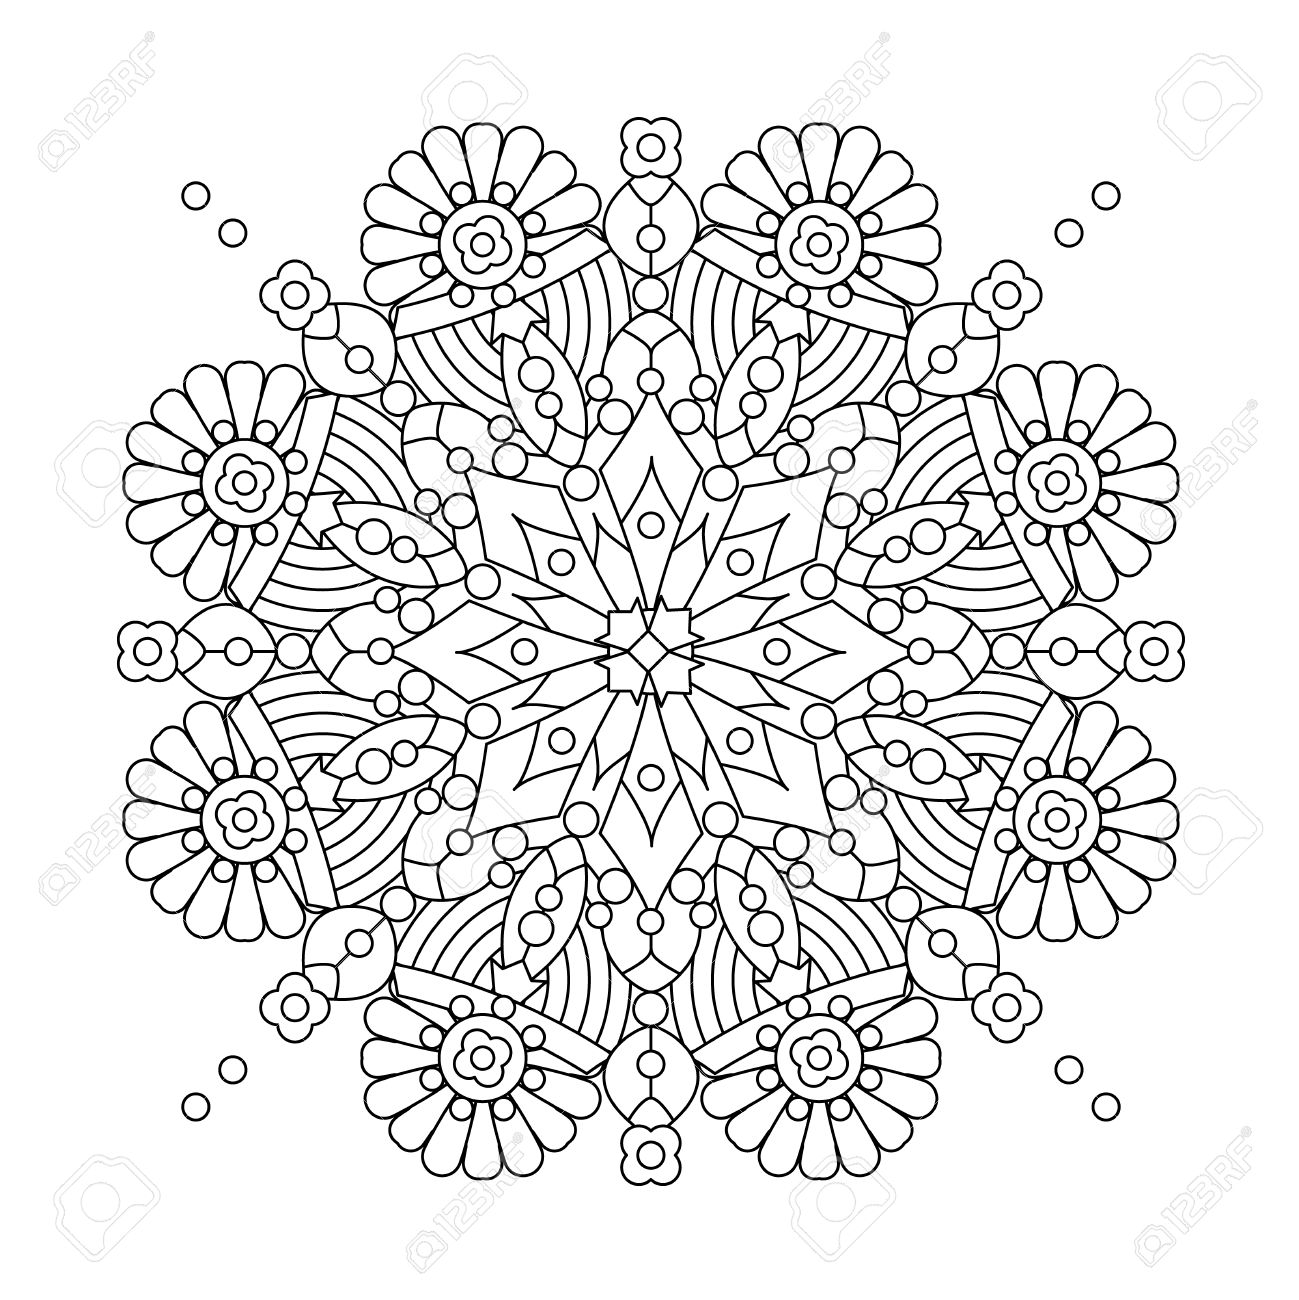 Best Mandala Snowflakes Coloring Pages Ideas - New Coloring Pages ...